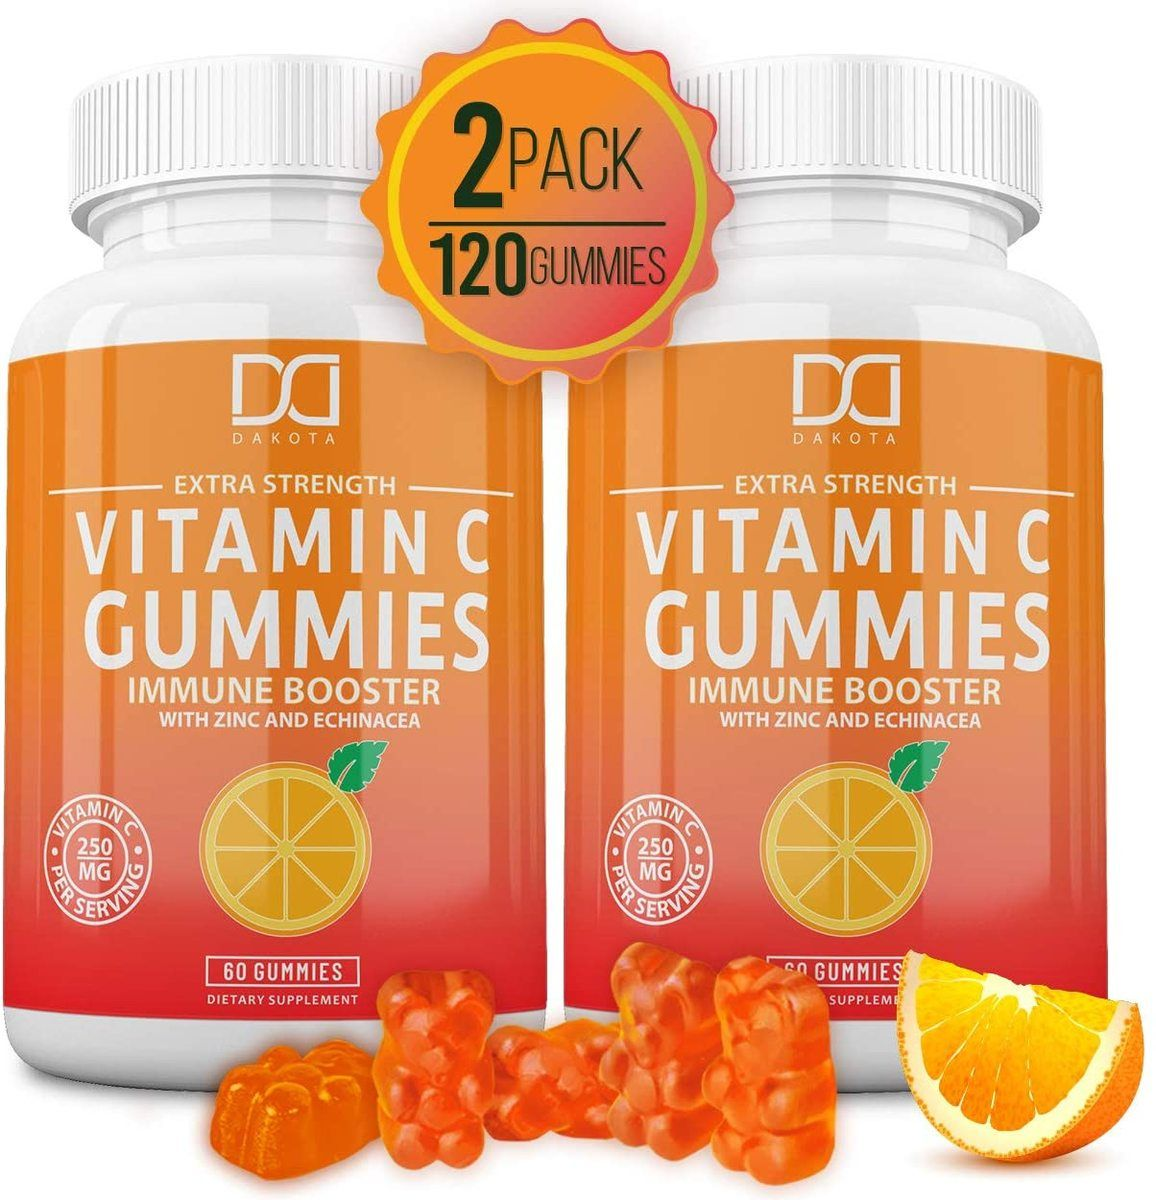 Vitamin C Gummies with Zinc for Immune Support. in 2020